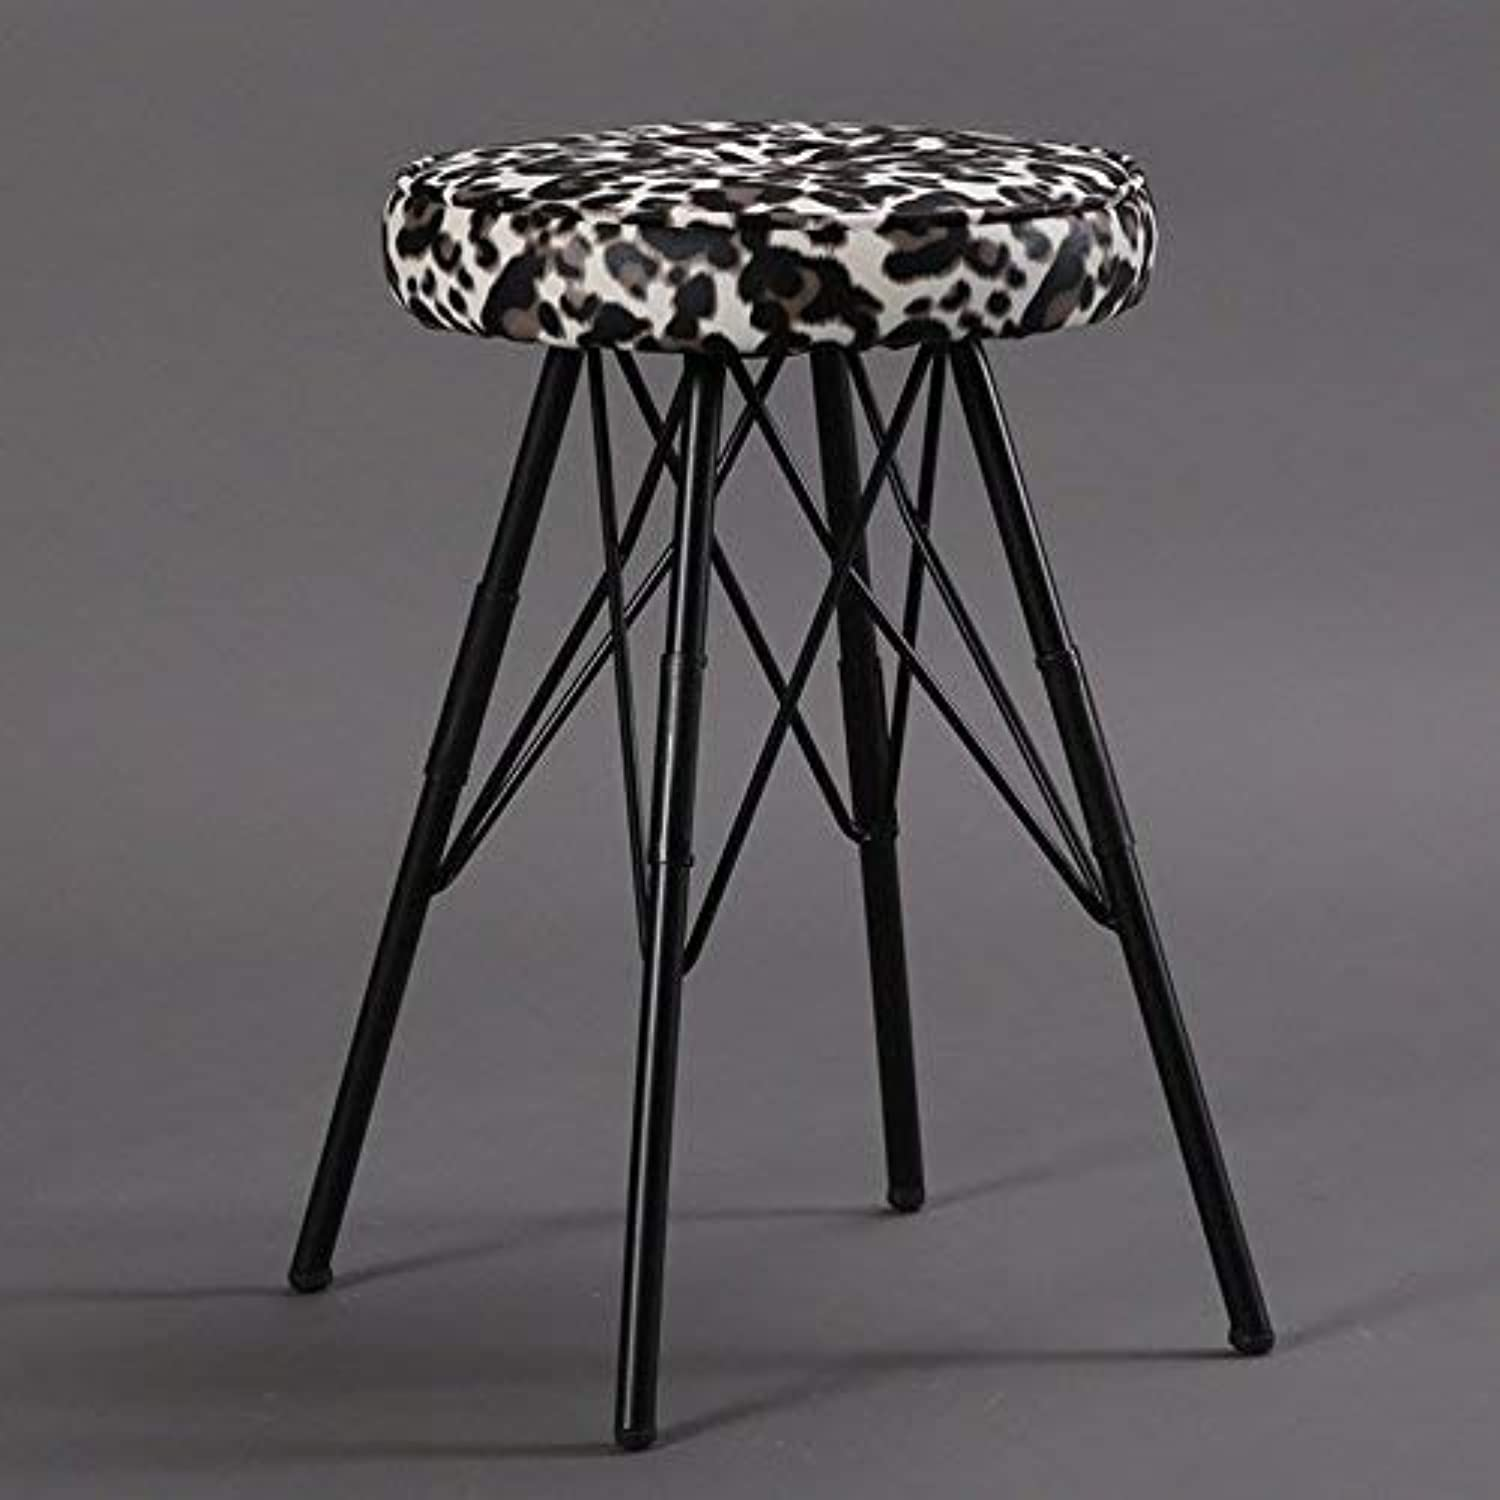 YZH Practical Chair Stool, Round Clothing Store Decoration Stool,The Best Choice for a Restaurant Cafe Lounge